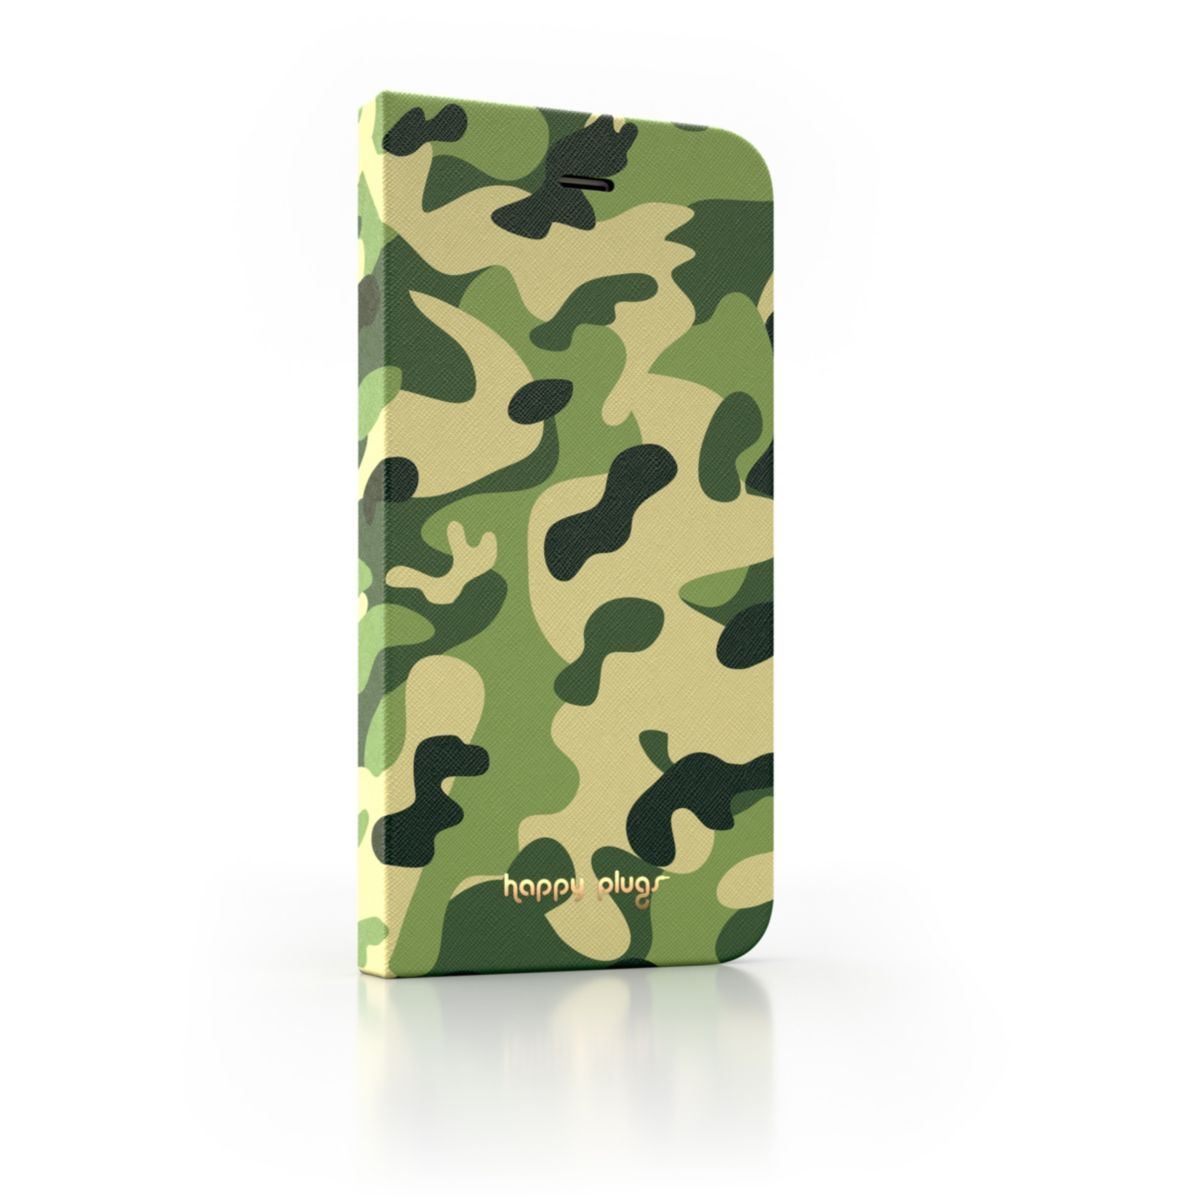 Etui HAPPY PLUGS iPhone 6/6s camouflage